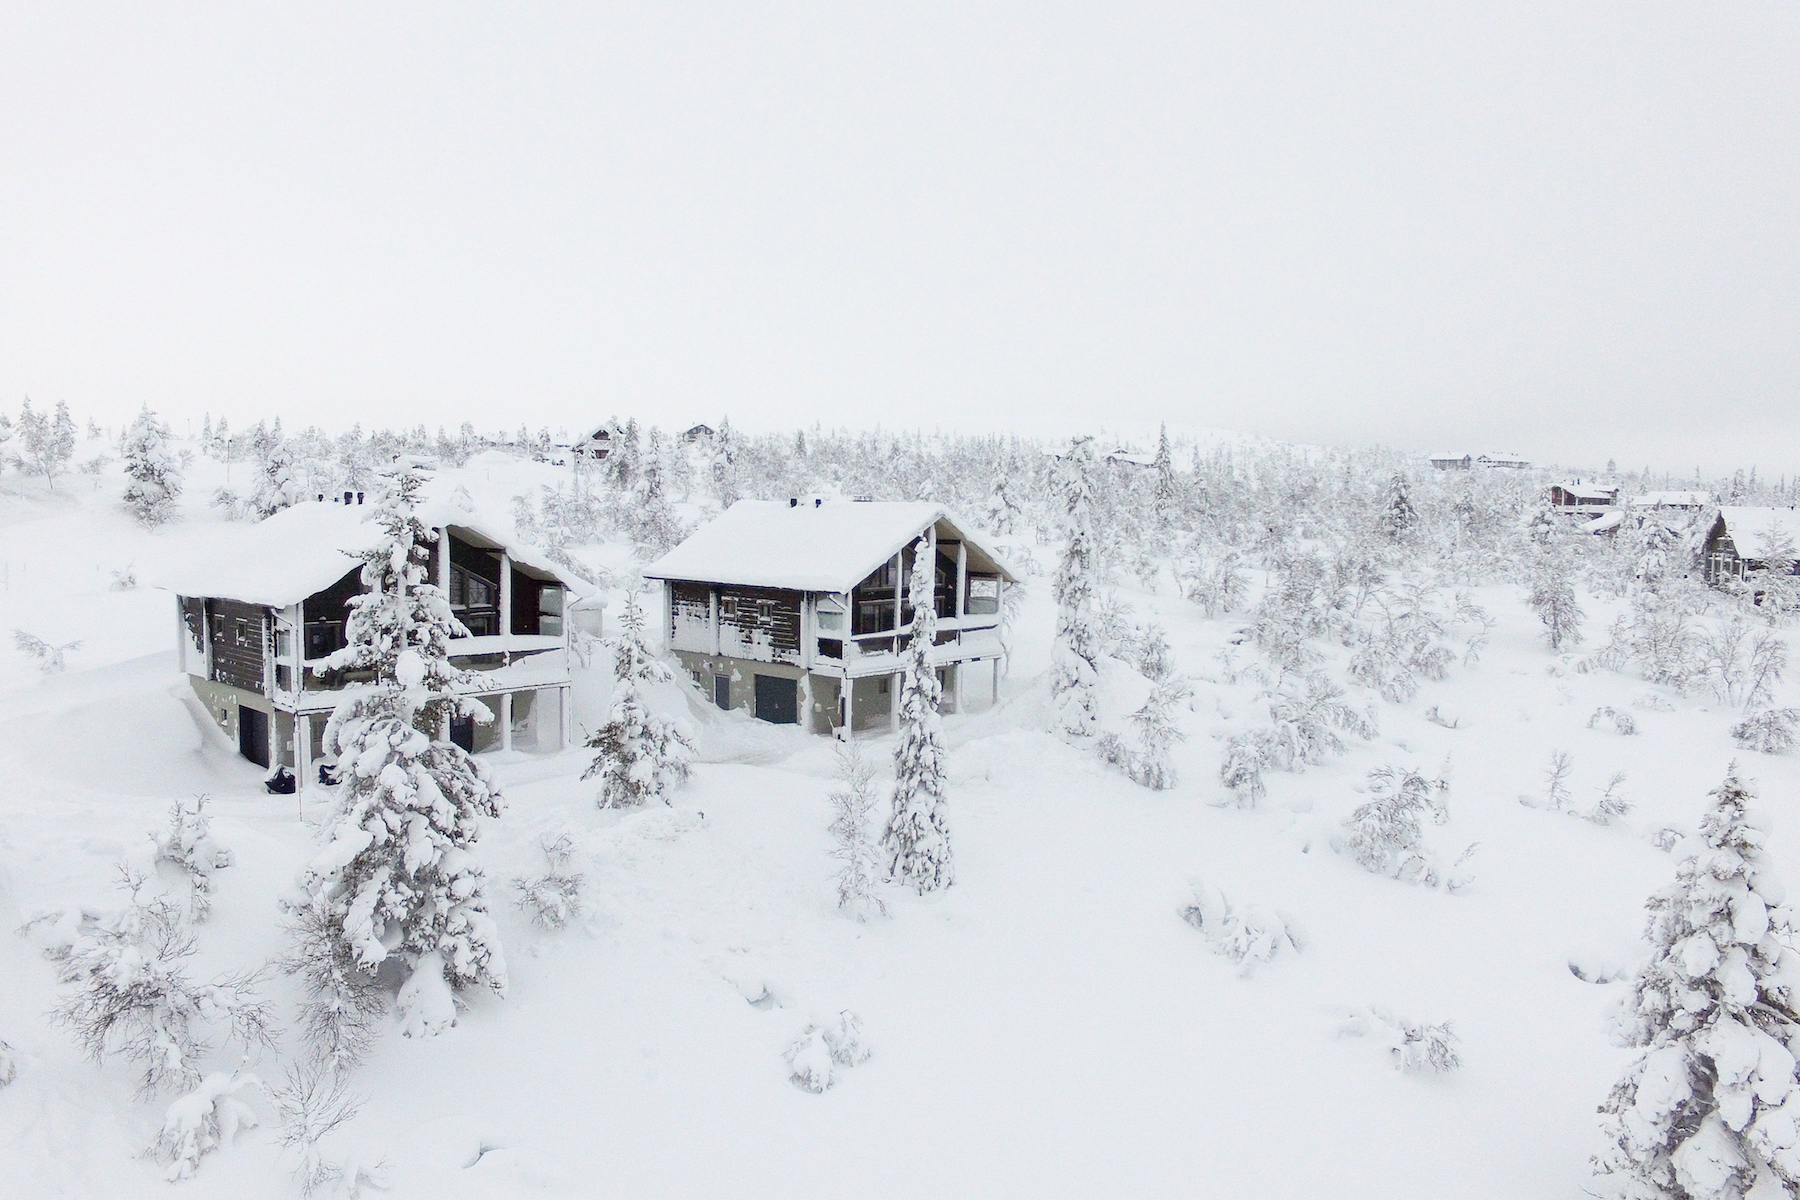 Single Family Home for Sale at Arctic Lumo Tuohitie 3 B Other Cities In Finland, Cities In Finland, 99830 Finland